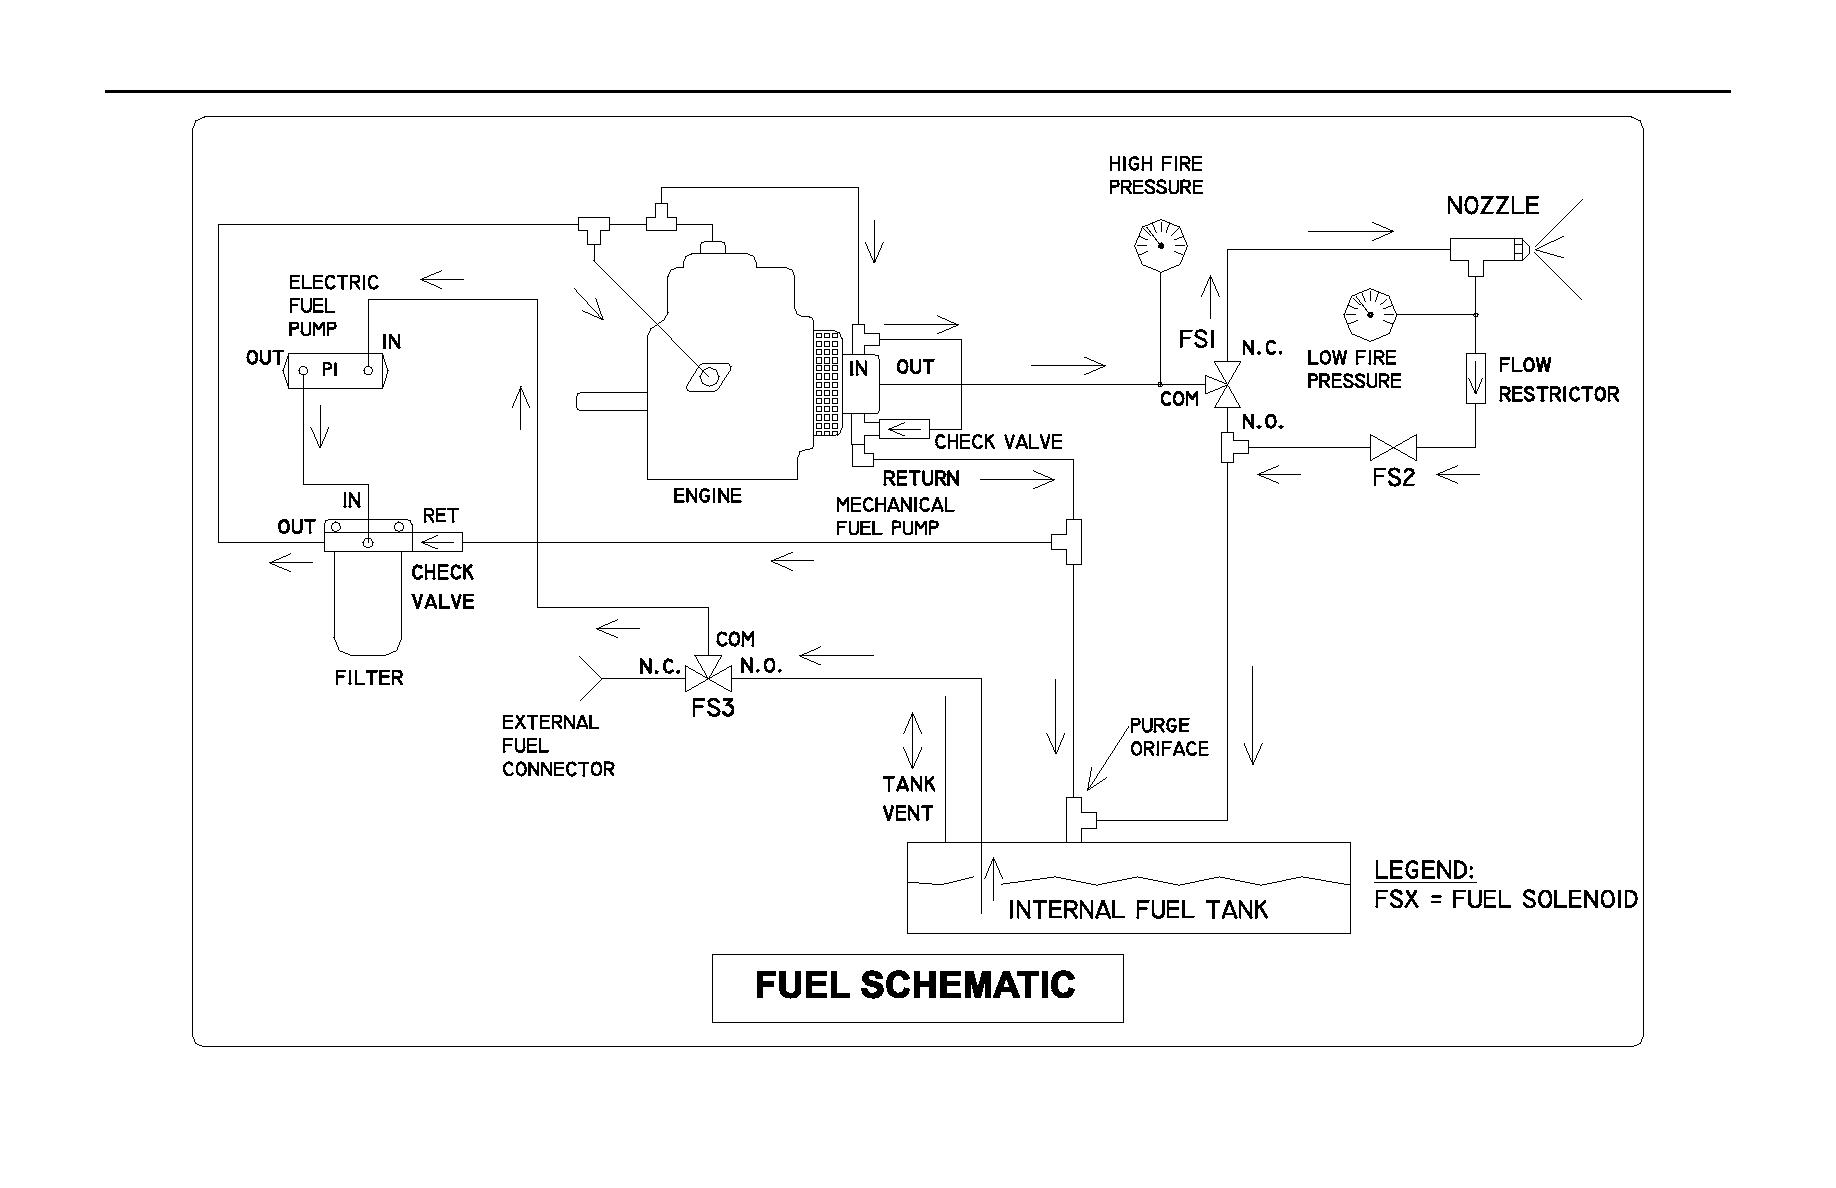 hight resolution of lcfh fuel system schematic diagram